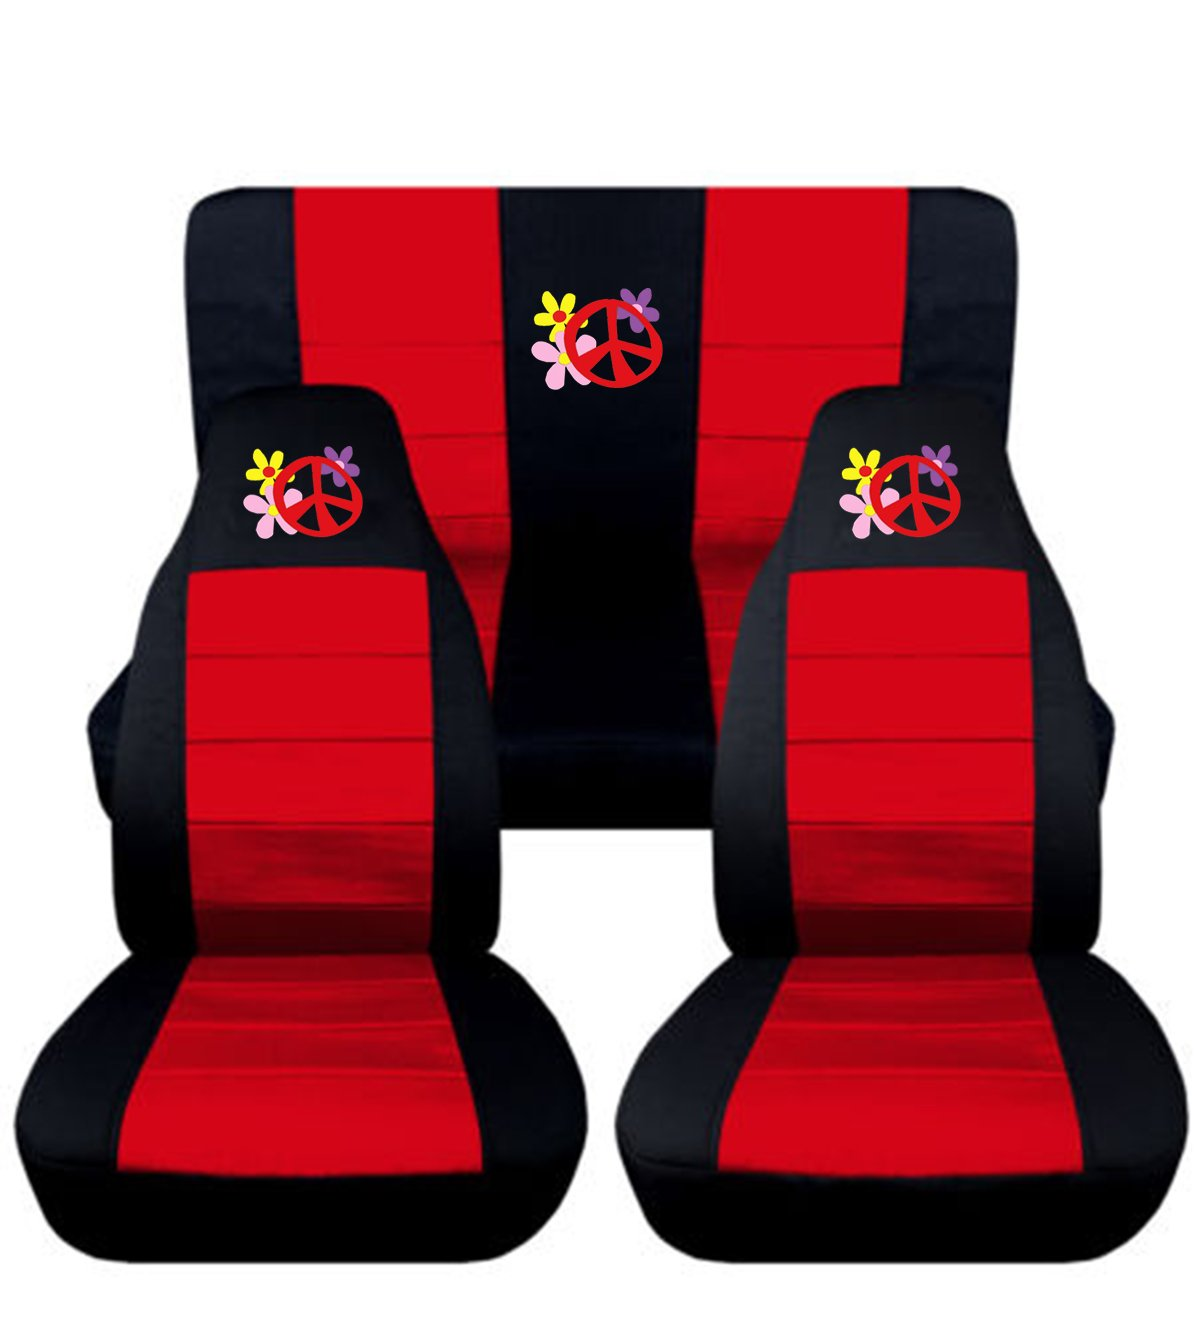 Coupe, Black and Yellow Fits 1998 1999 2000 2001 2002 2003 Volkswagen Beetle Flower Power Seat Covers 12 Color Options